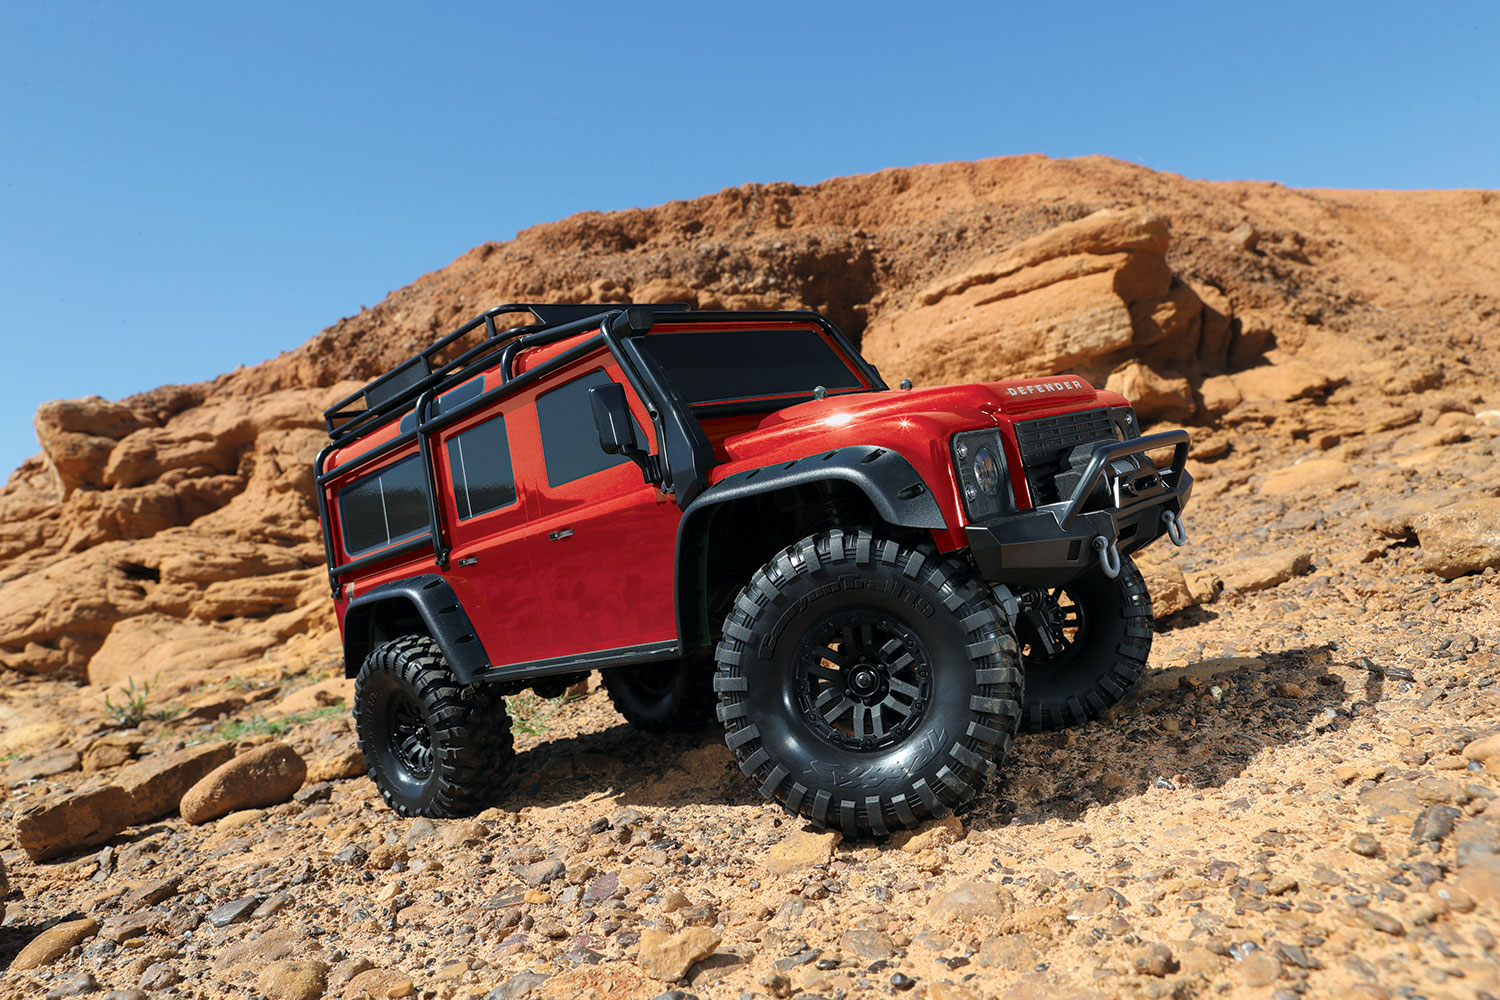 Traxxas TRX-4 1/10 Scale And Trail Crawler - Page 6 82056-4-Defender-Rocks-Still-3qrtr-LtoR-DX1I0042